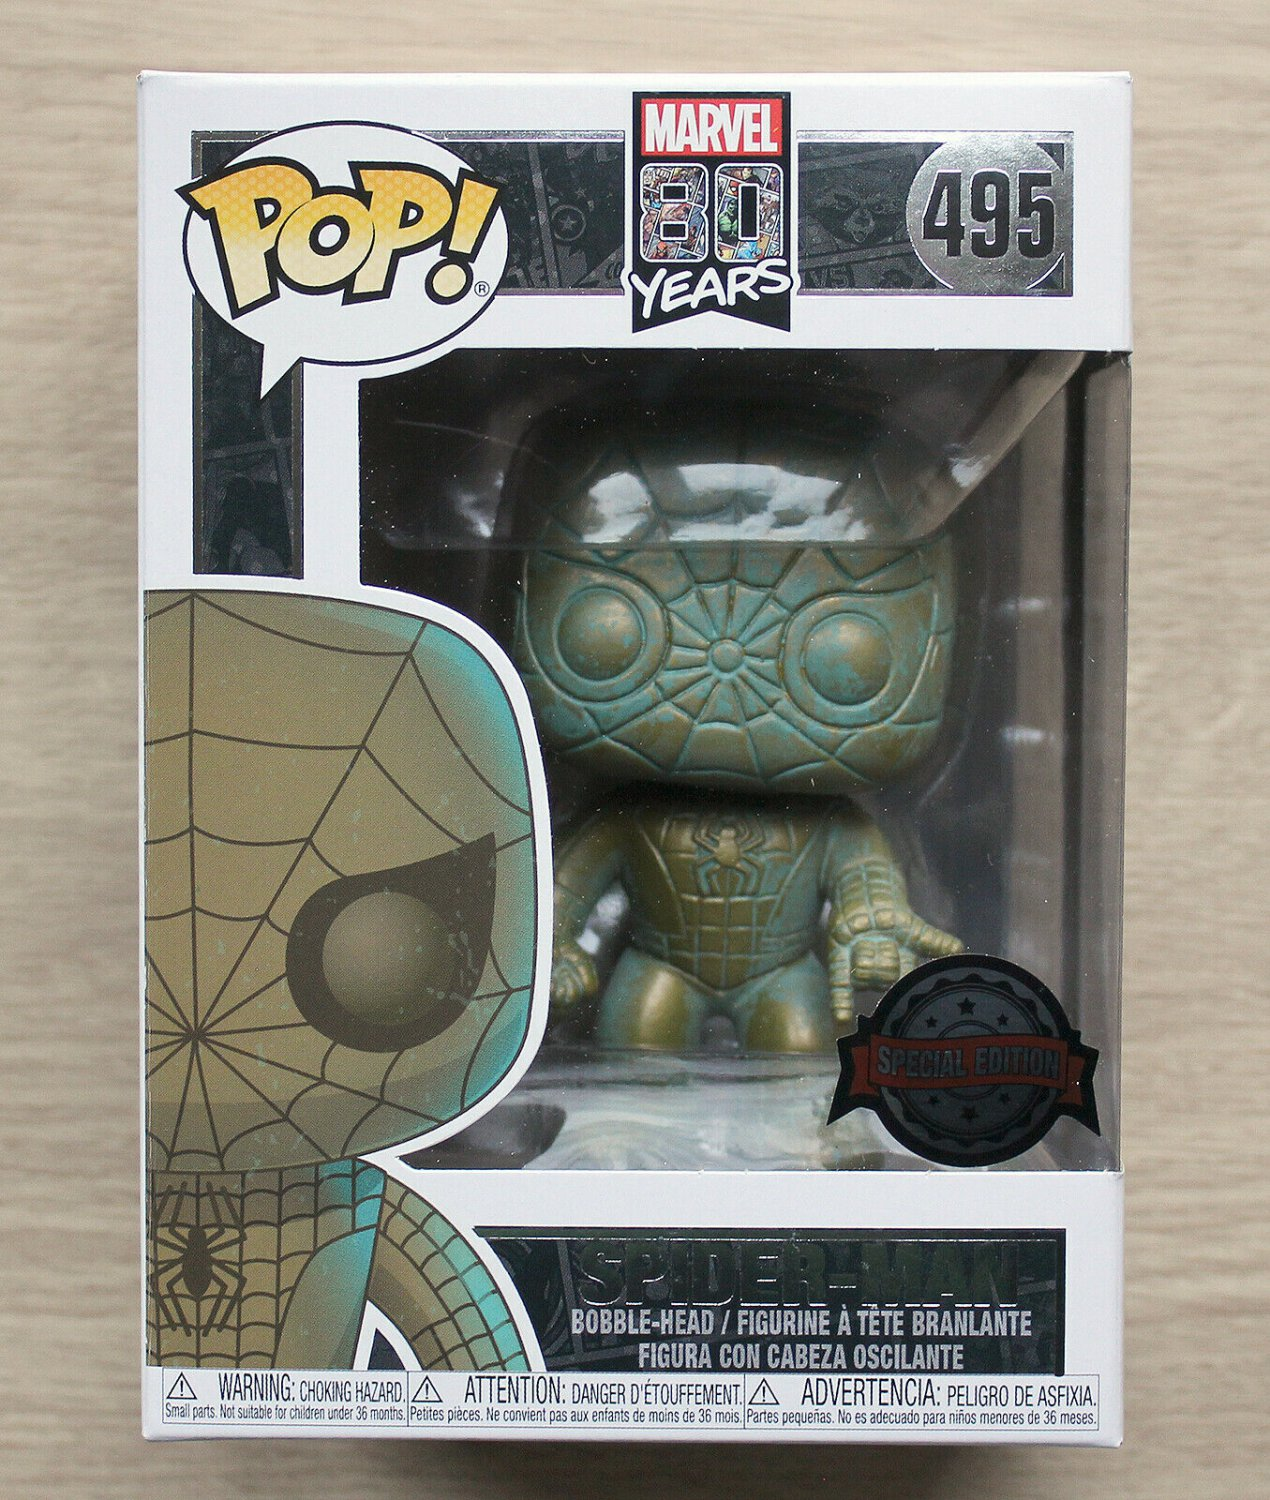 Funko Pop Marvel 80 Years Spider-Man Patina Target + Free Protector